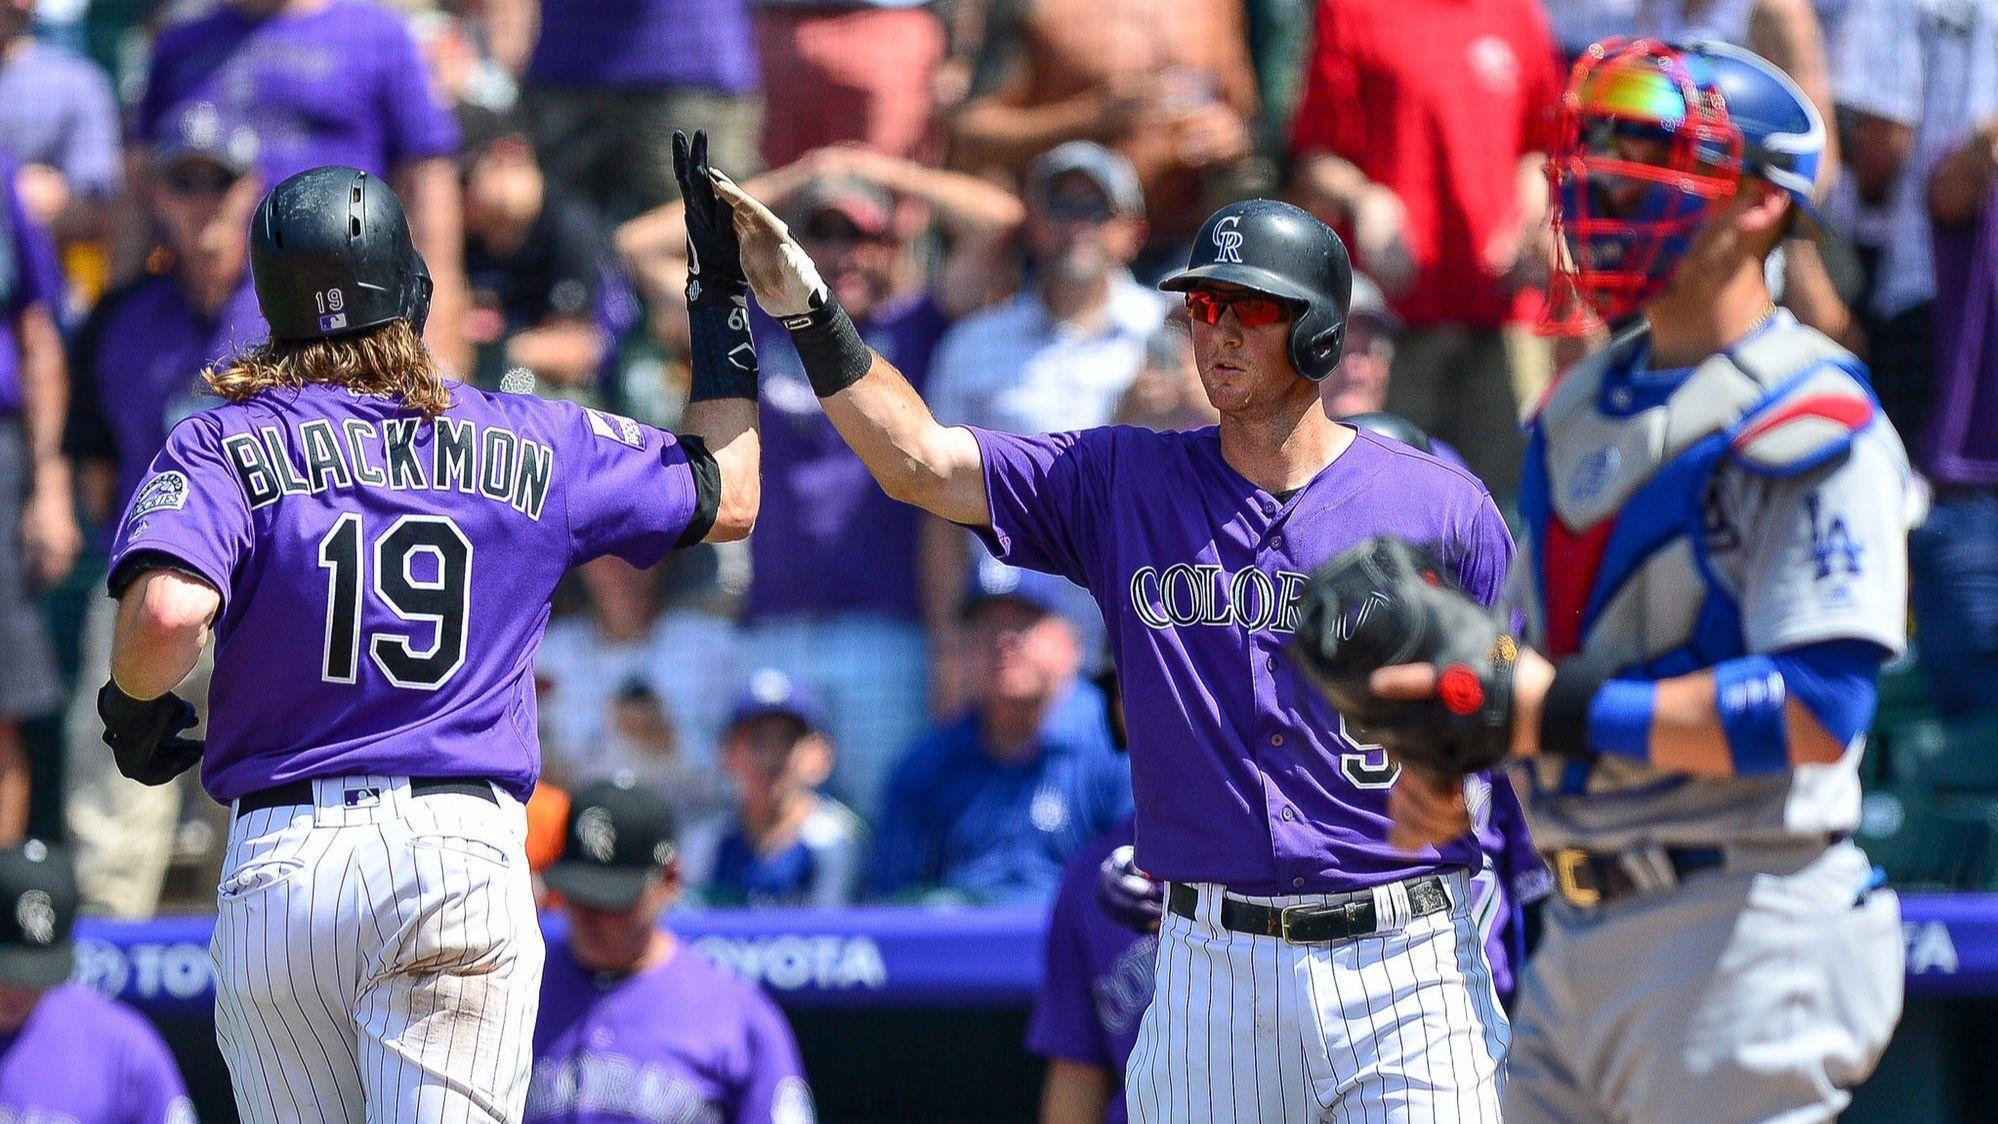 Dodgers' bullpen allows Rockies to get away in 4-3 loss - The San Diego Union-Tribune